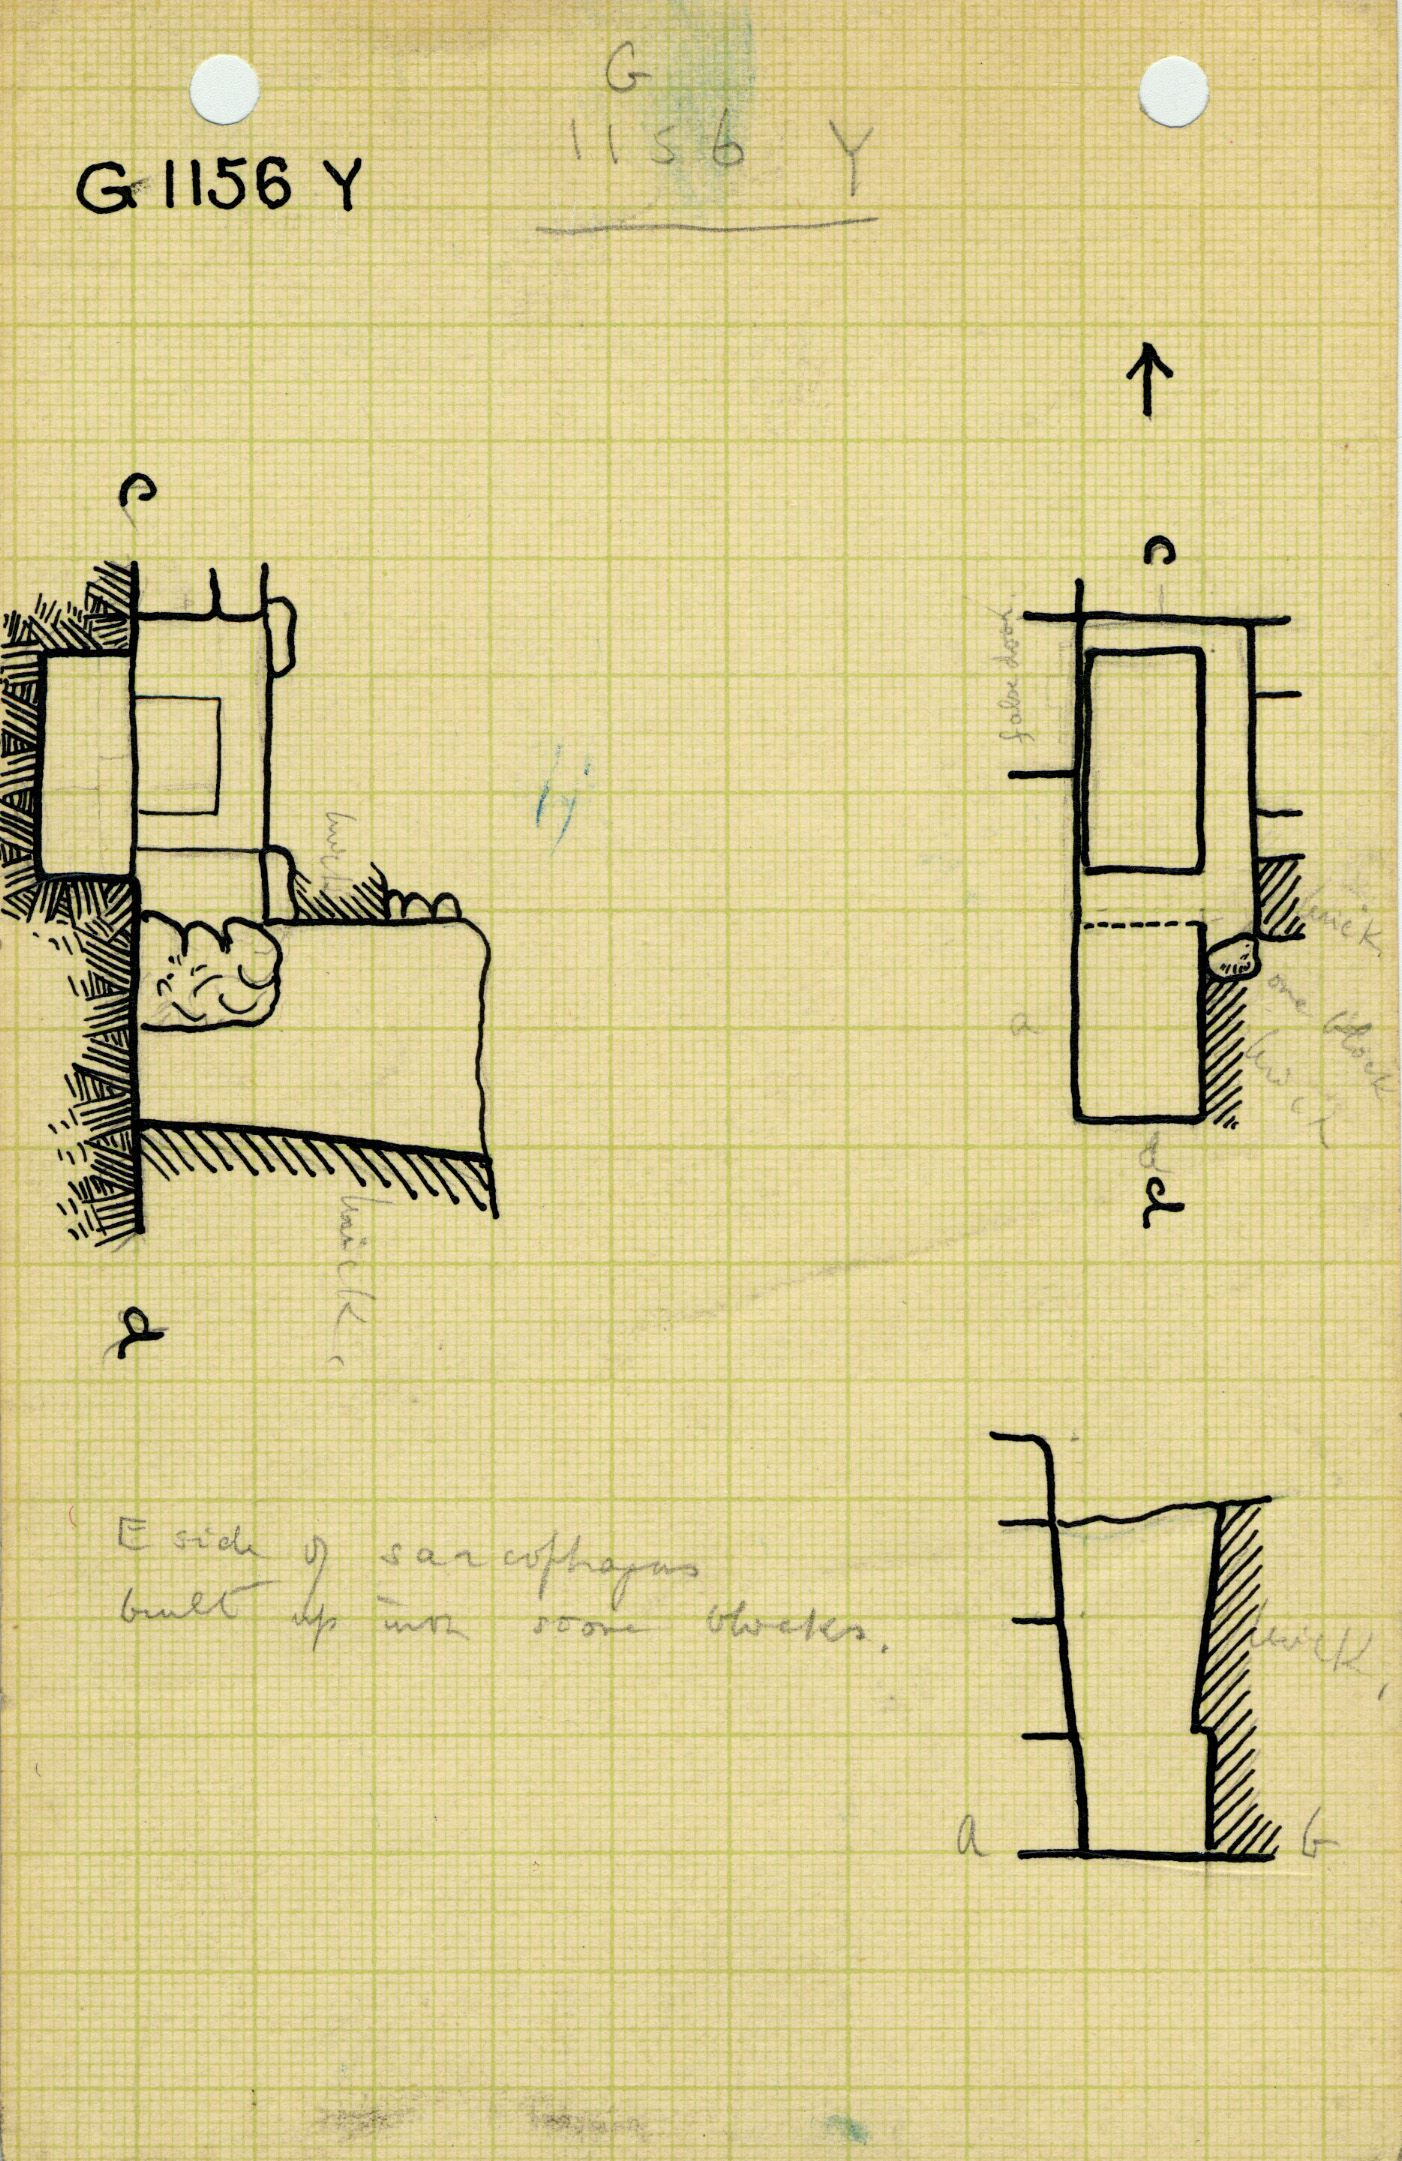 Maps and plans: G 1156, Shaft Y